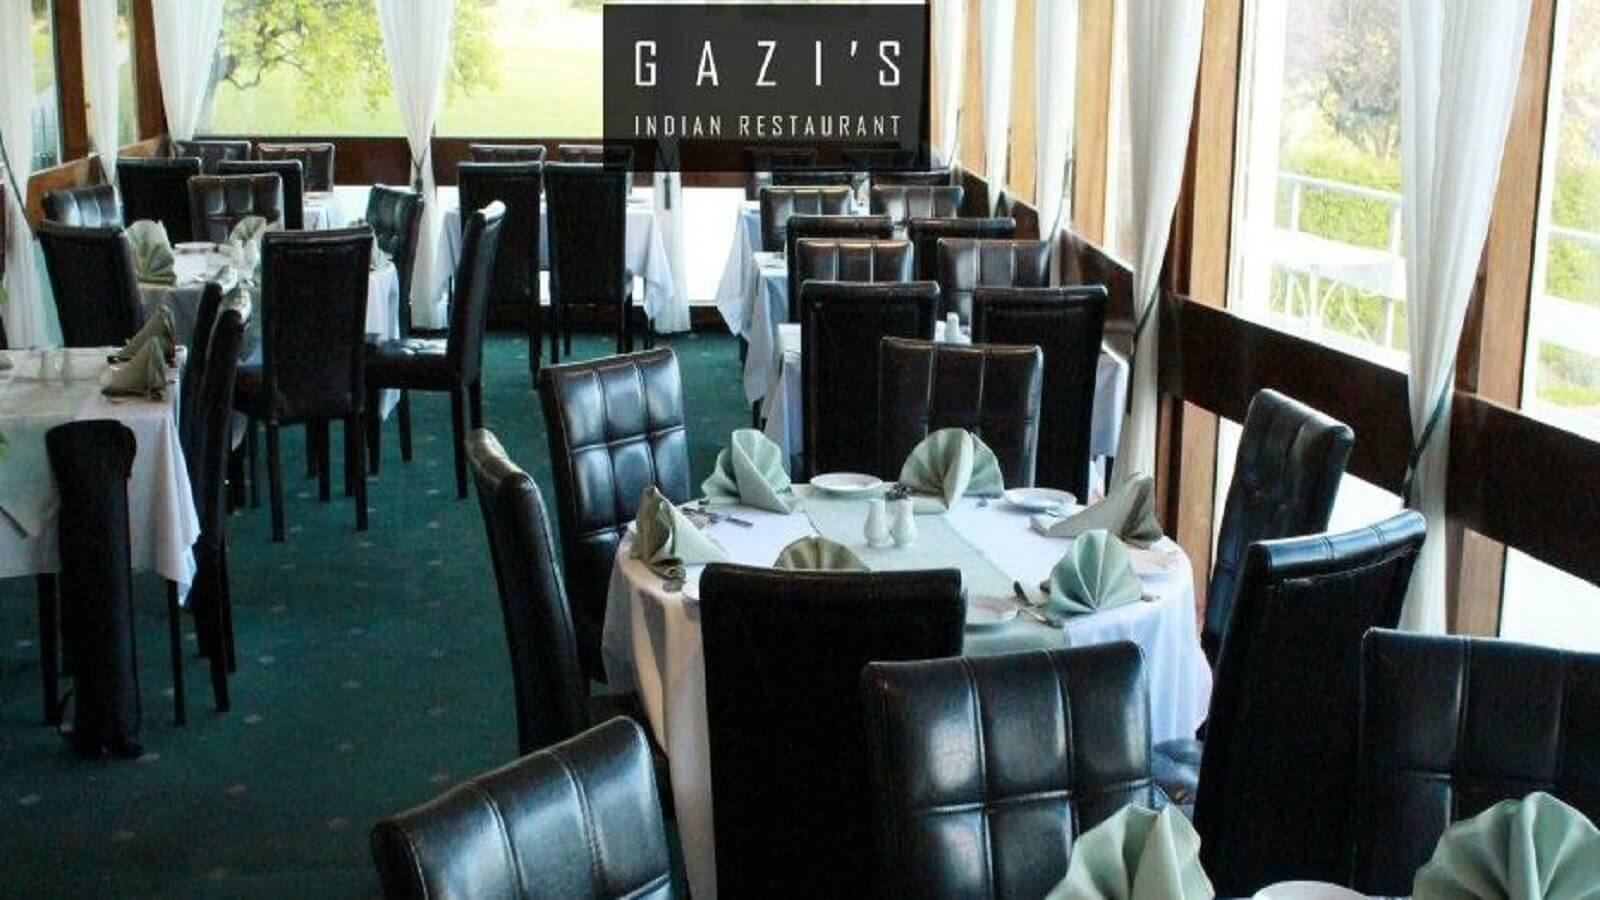 Gazis Indian Restaurant